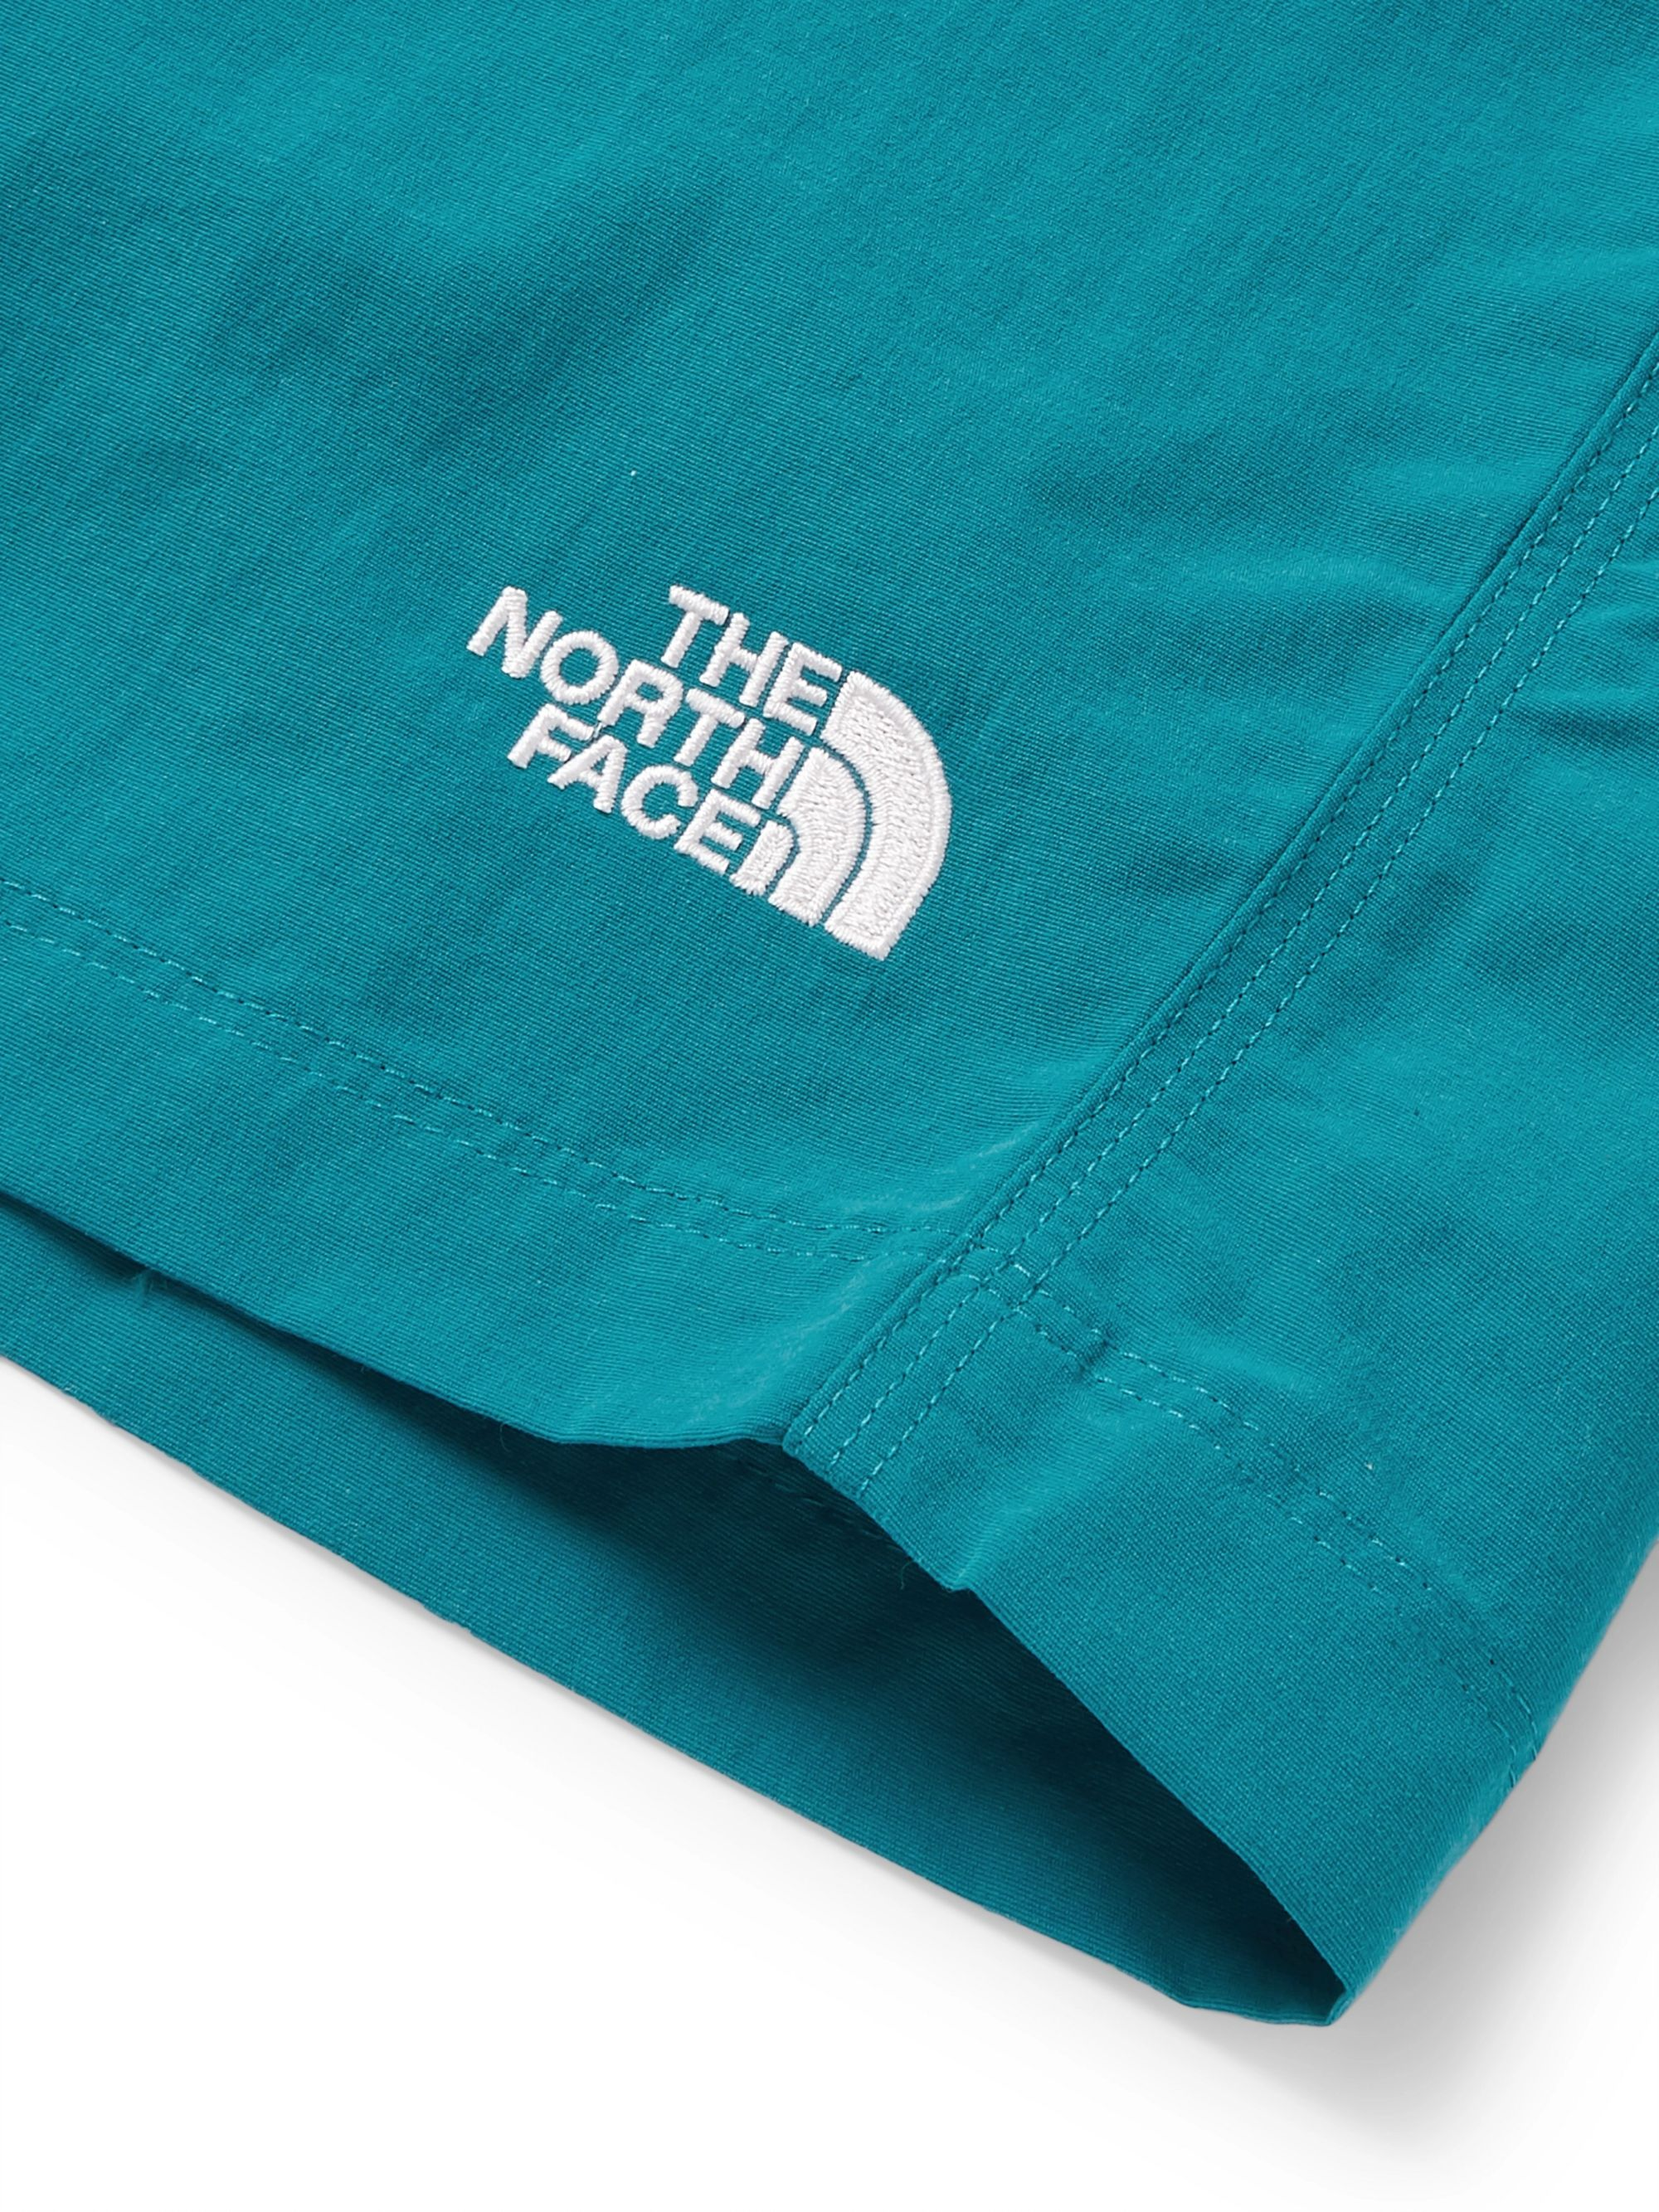 The North Face Class V Rapids Nylon Shorts